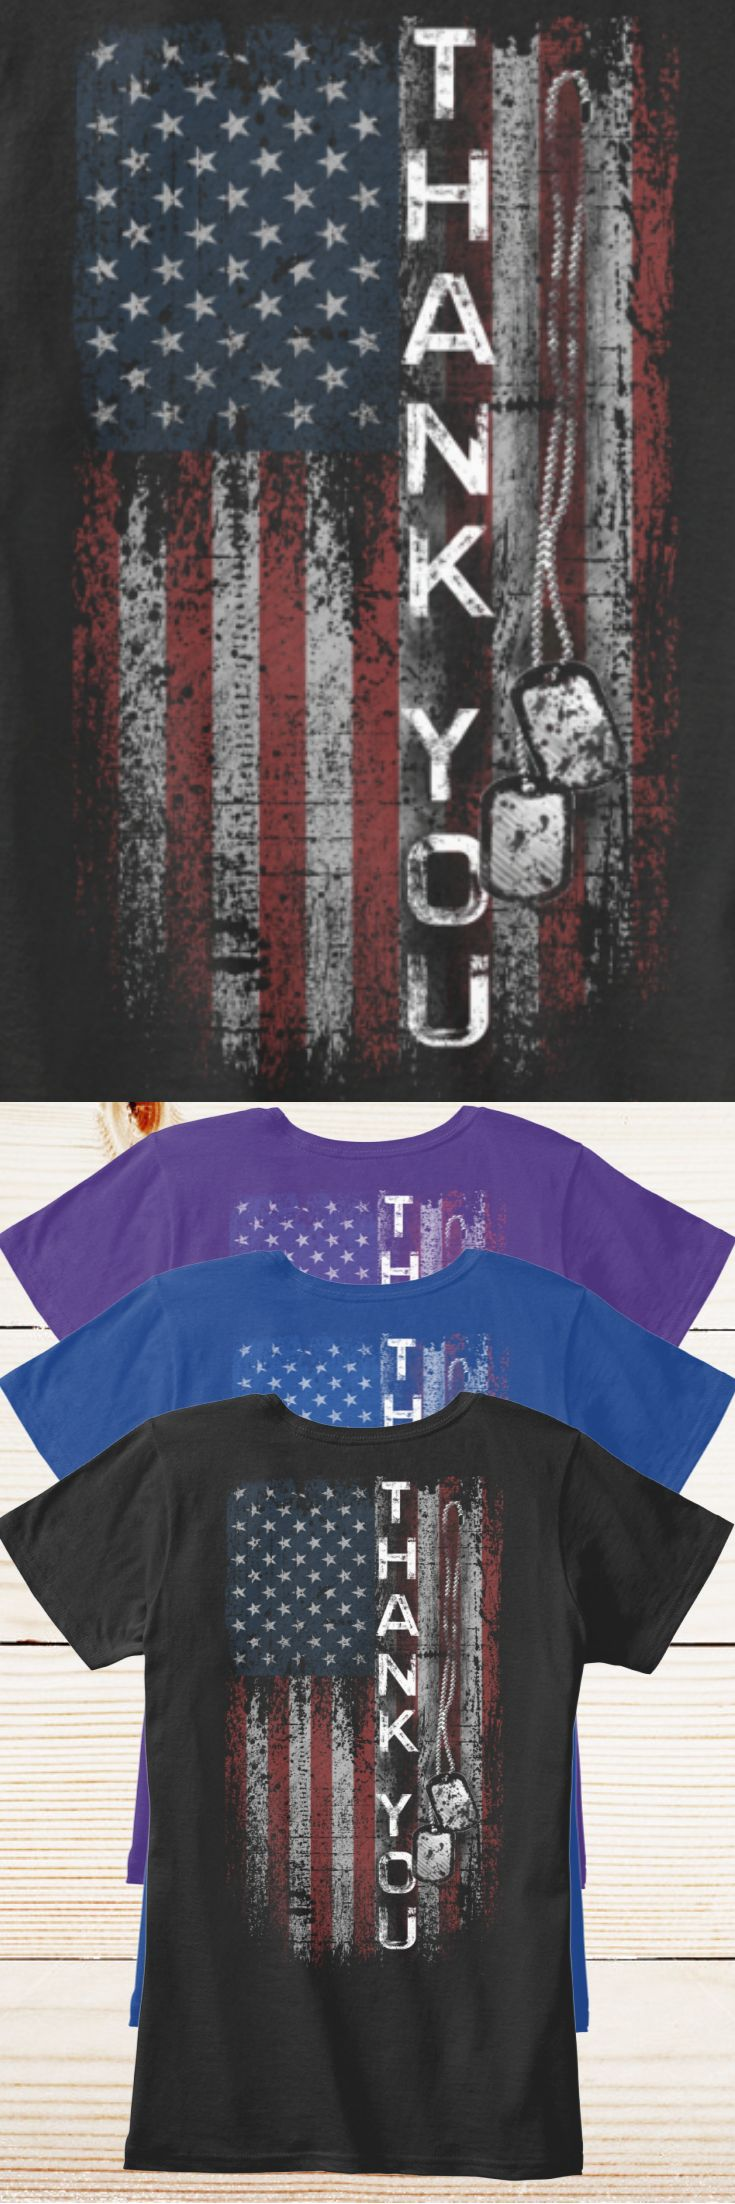 A Thank You to our veterans and active military. - Limited Edition! Only 2 days left for FREE SHIPPING, grab yours or gift it to a friend. You will both love it!